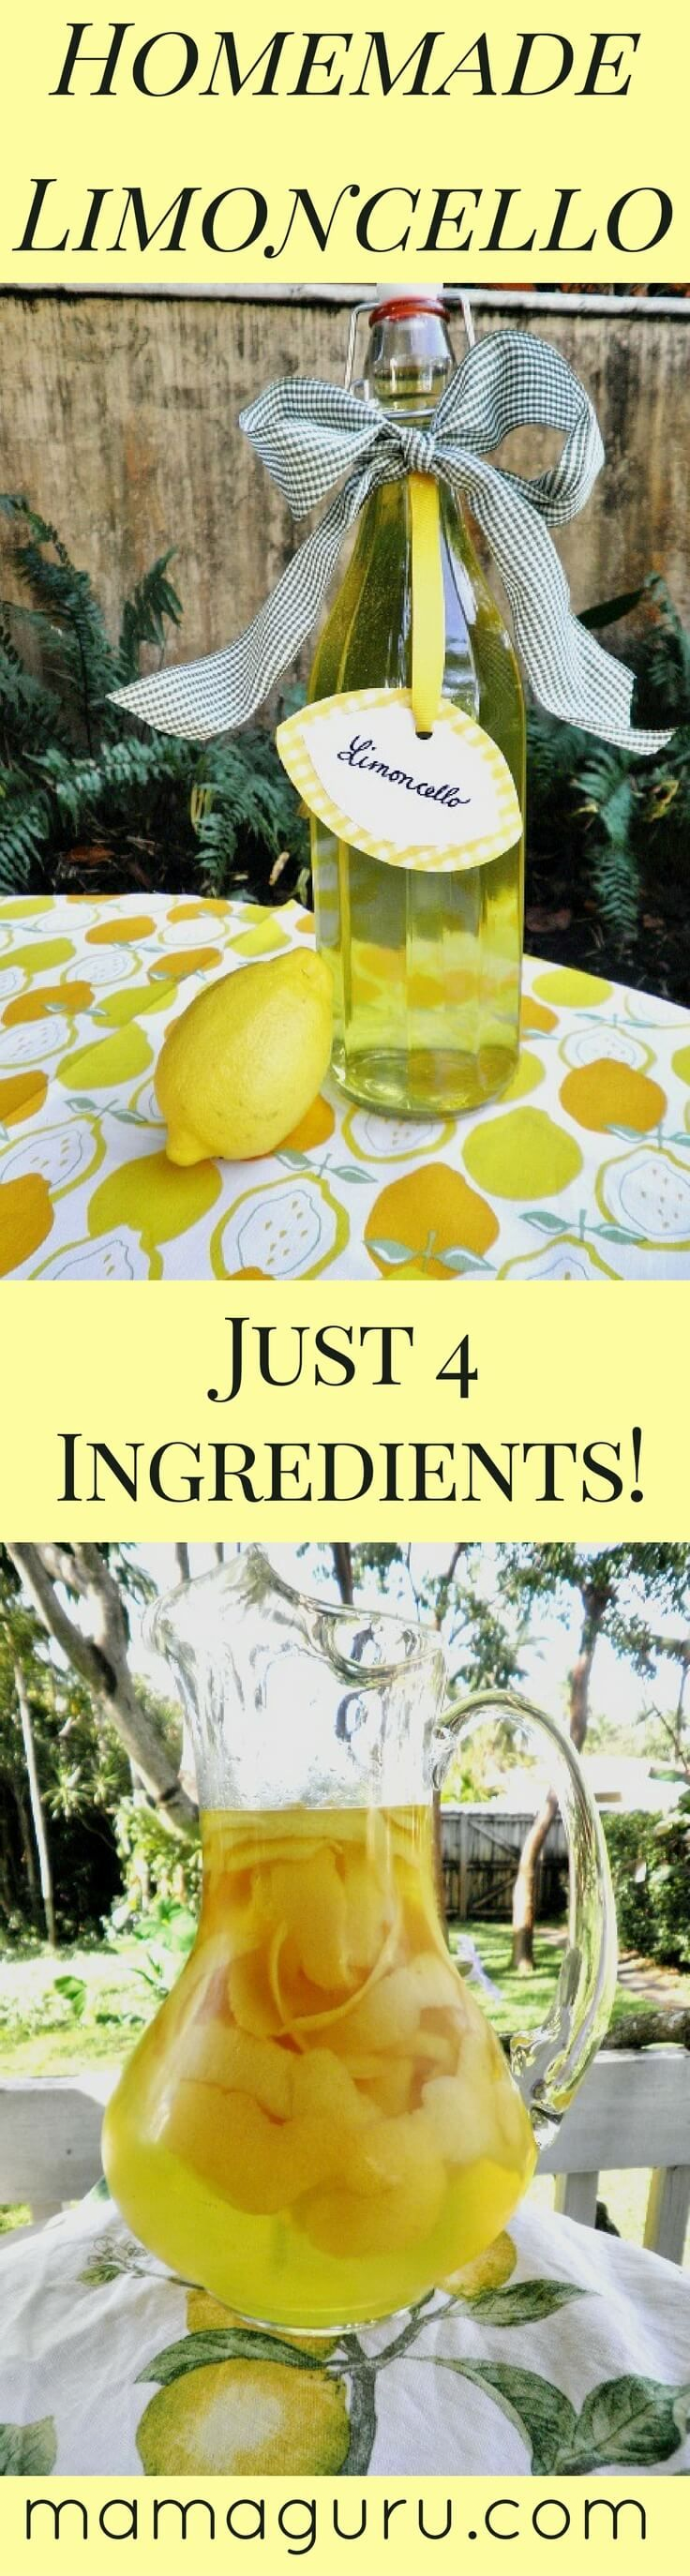 Homemade Limoncello ♥ Authentic Italian Recipe ♥ Homemade Christmas Gift